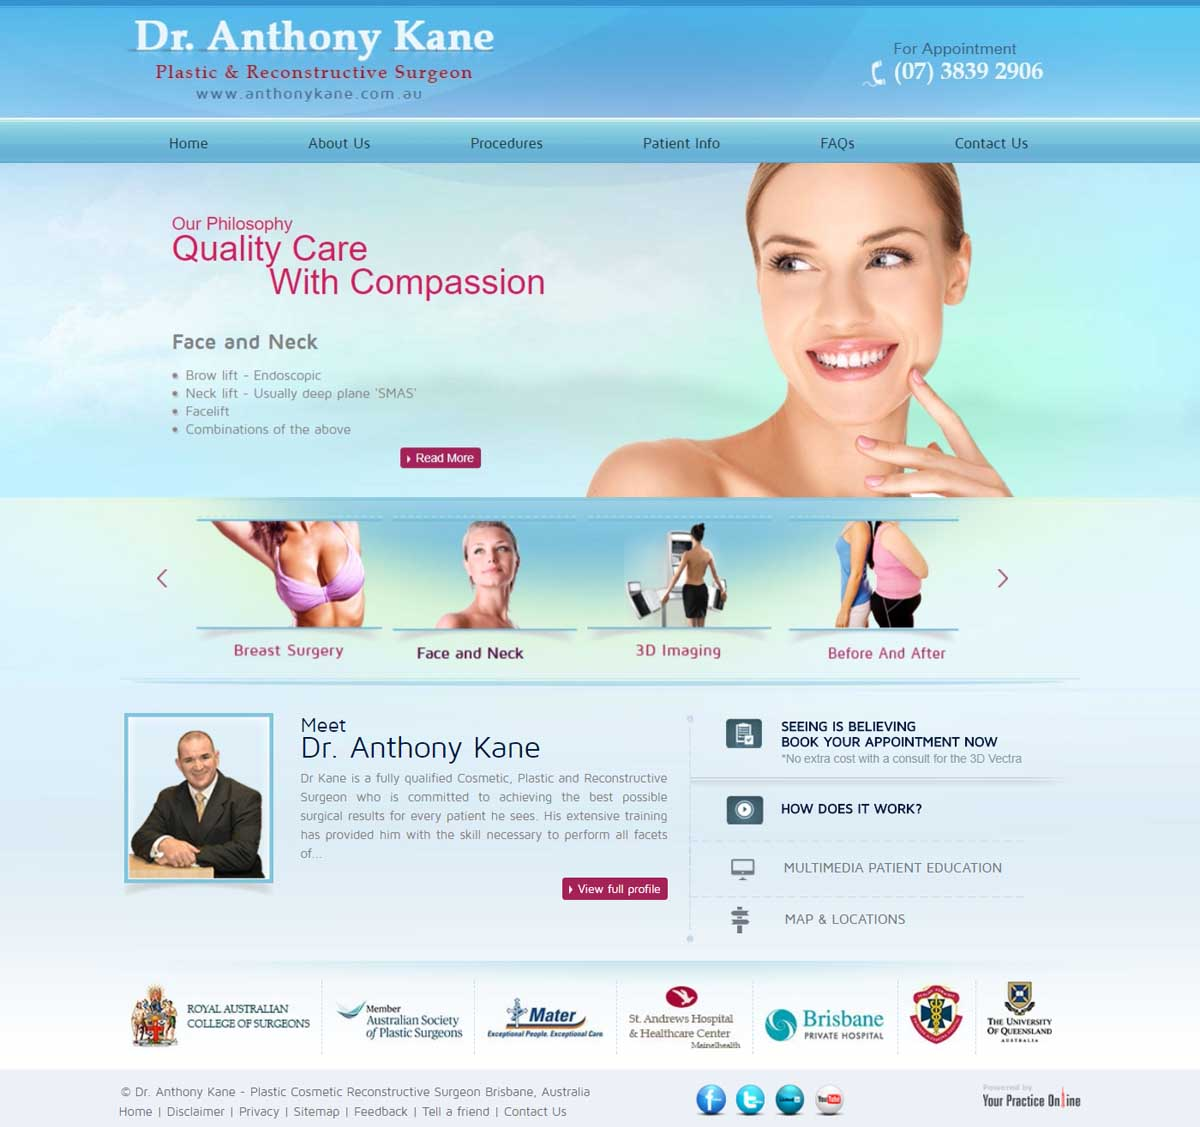 Brisbane Plastic & Reconstructive Surgeon Website